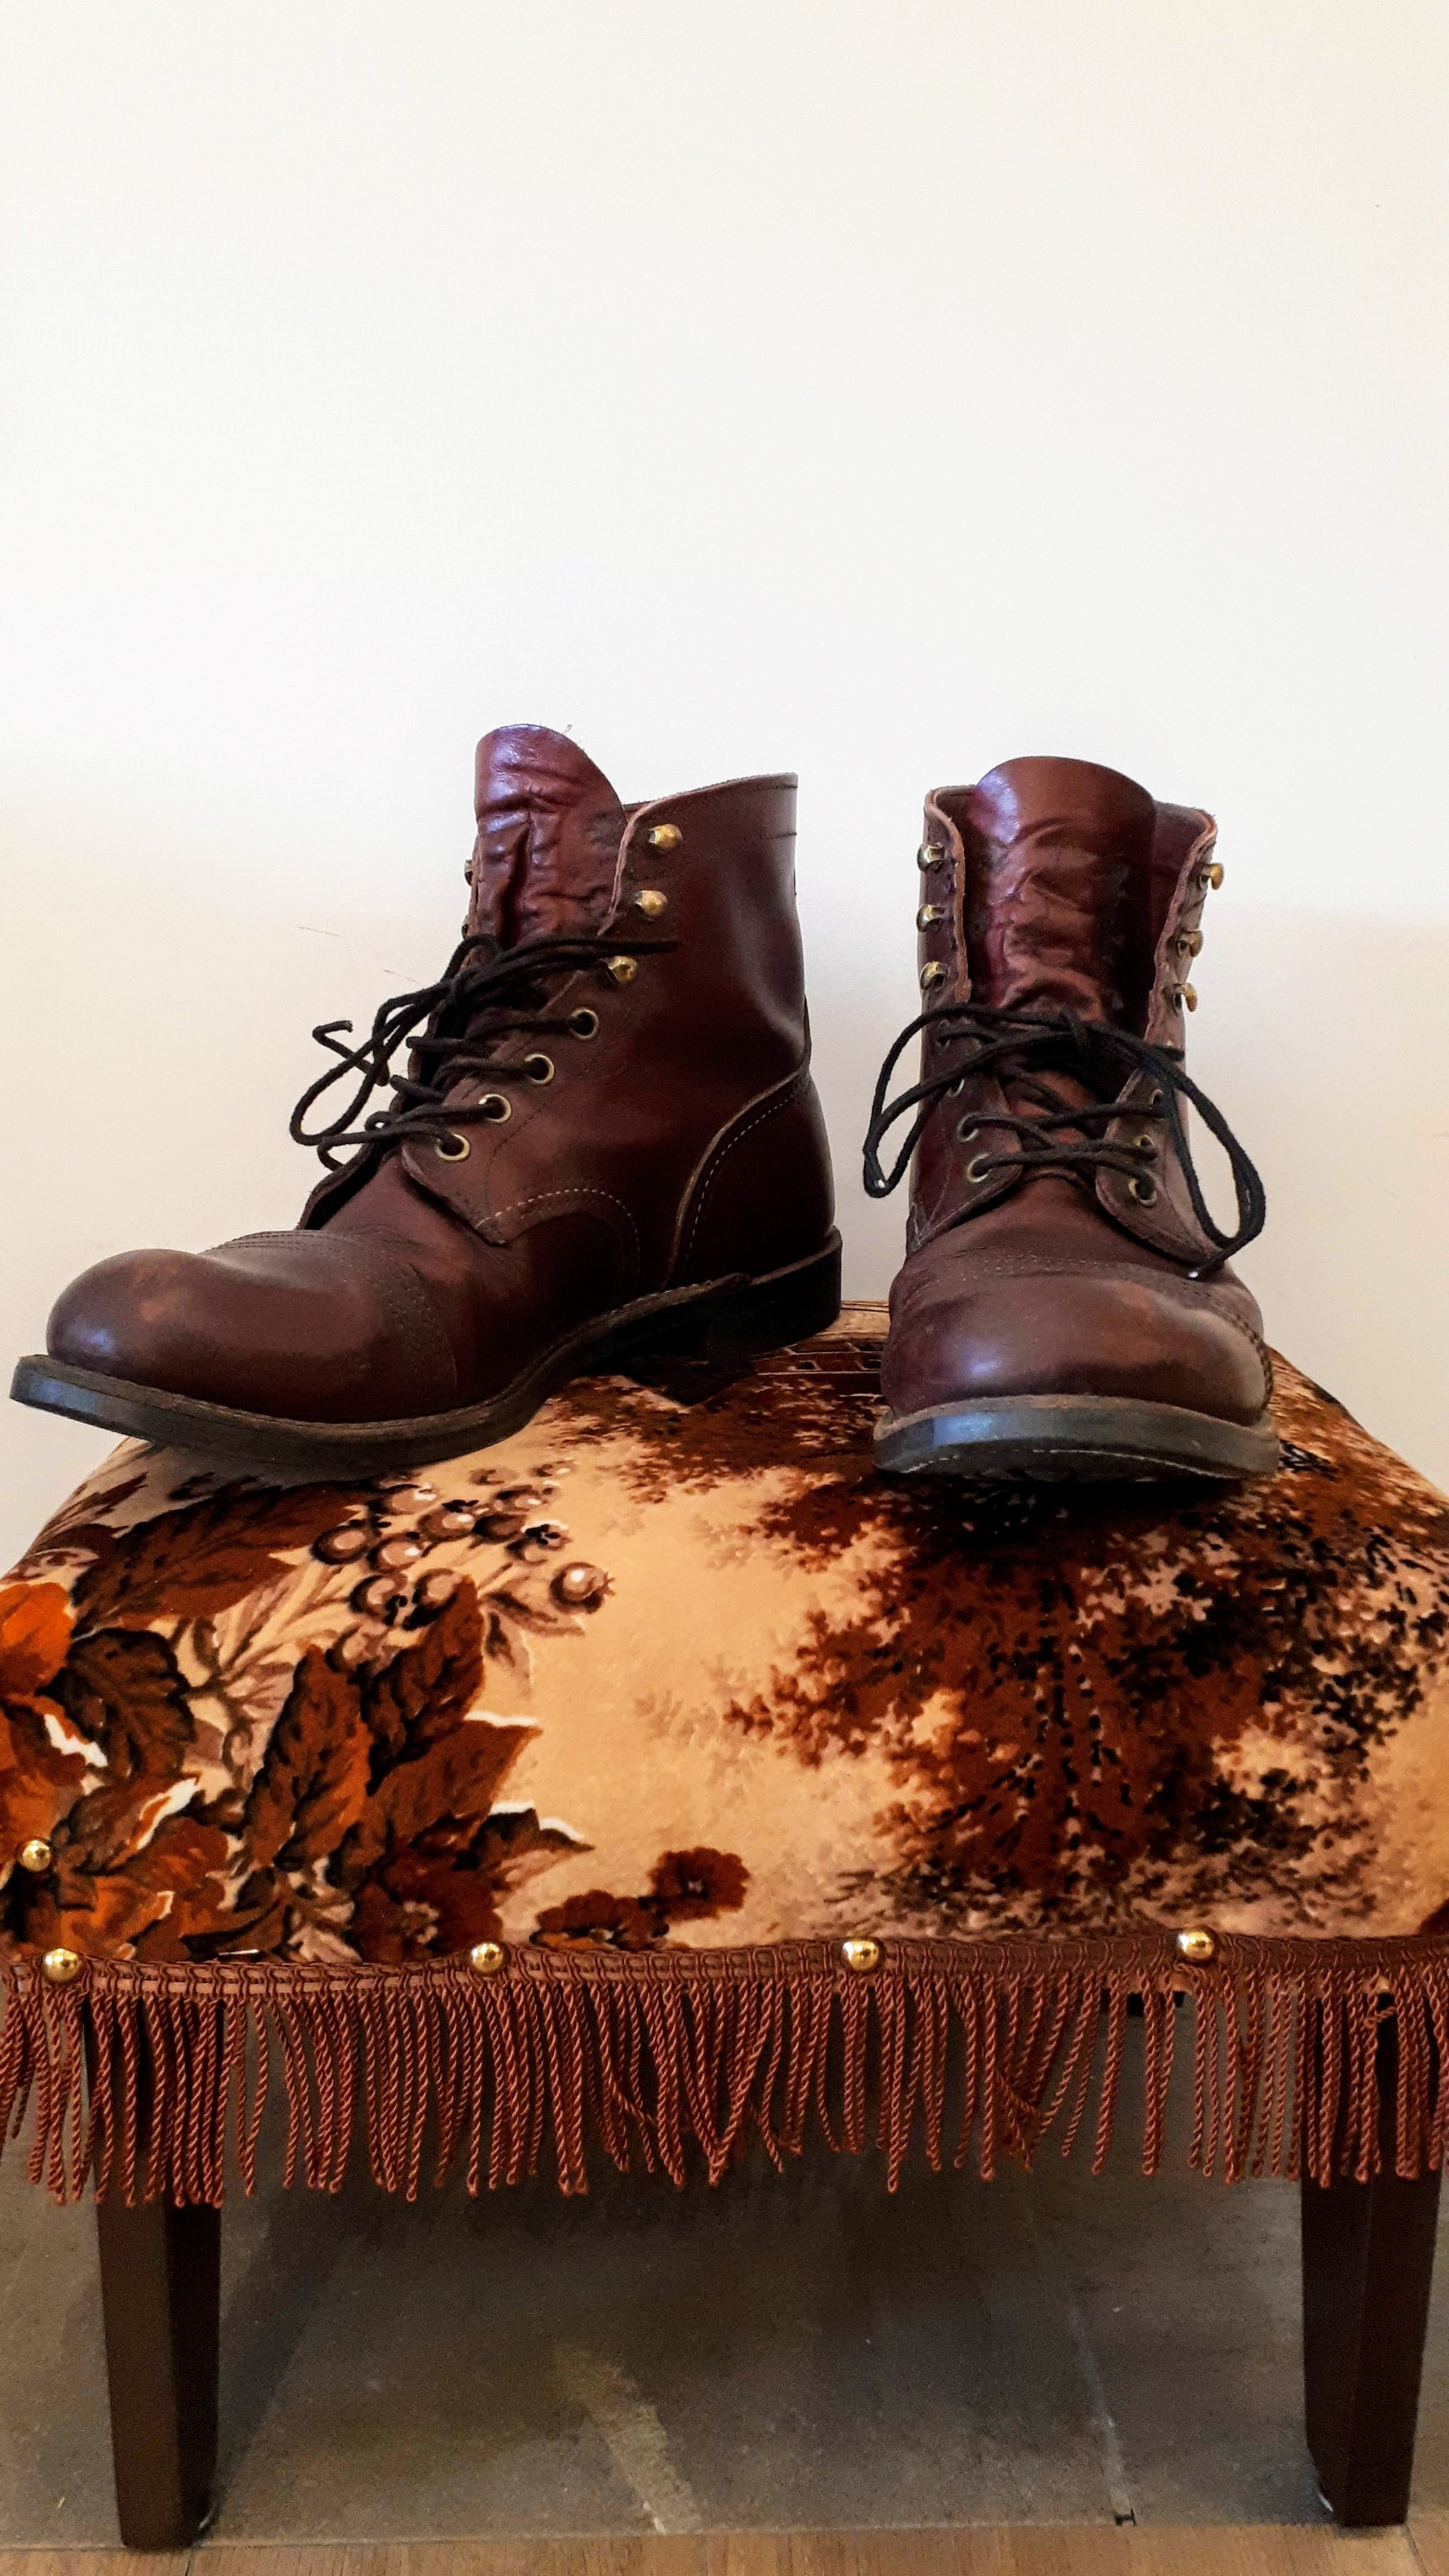 Redwing boots; Men's size 8.5 (women's size 10), $62